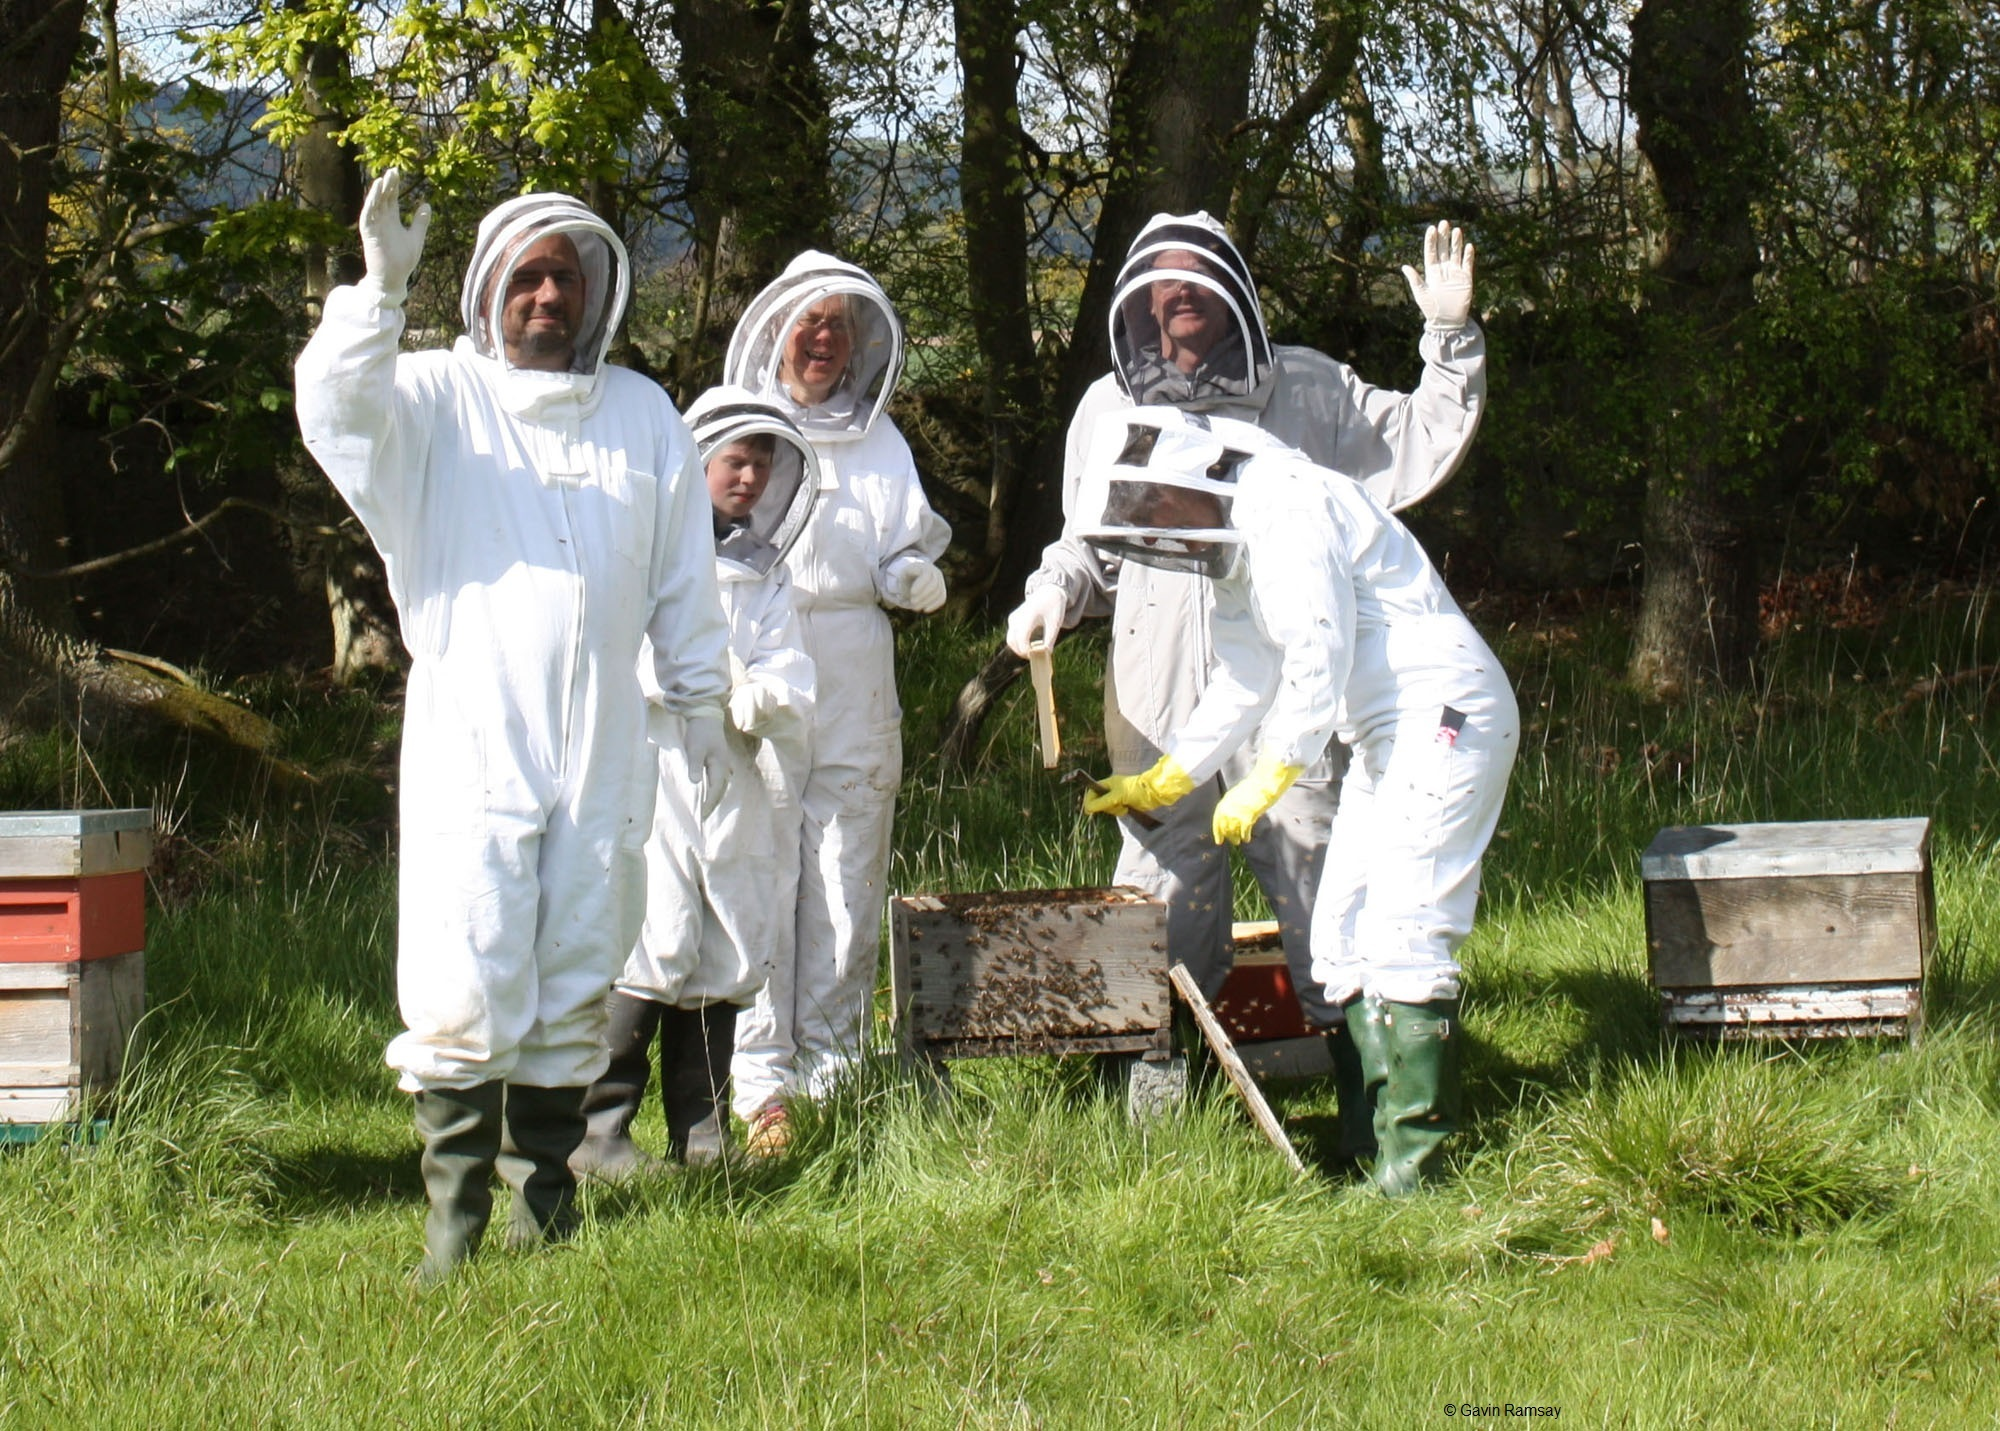 The trainee beekeepers will receive a 'starter kit' which includes bees